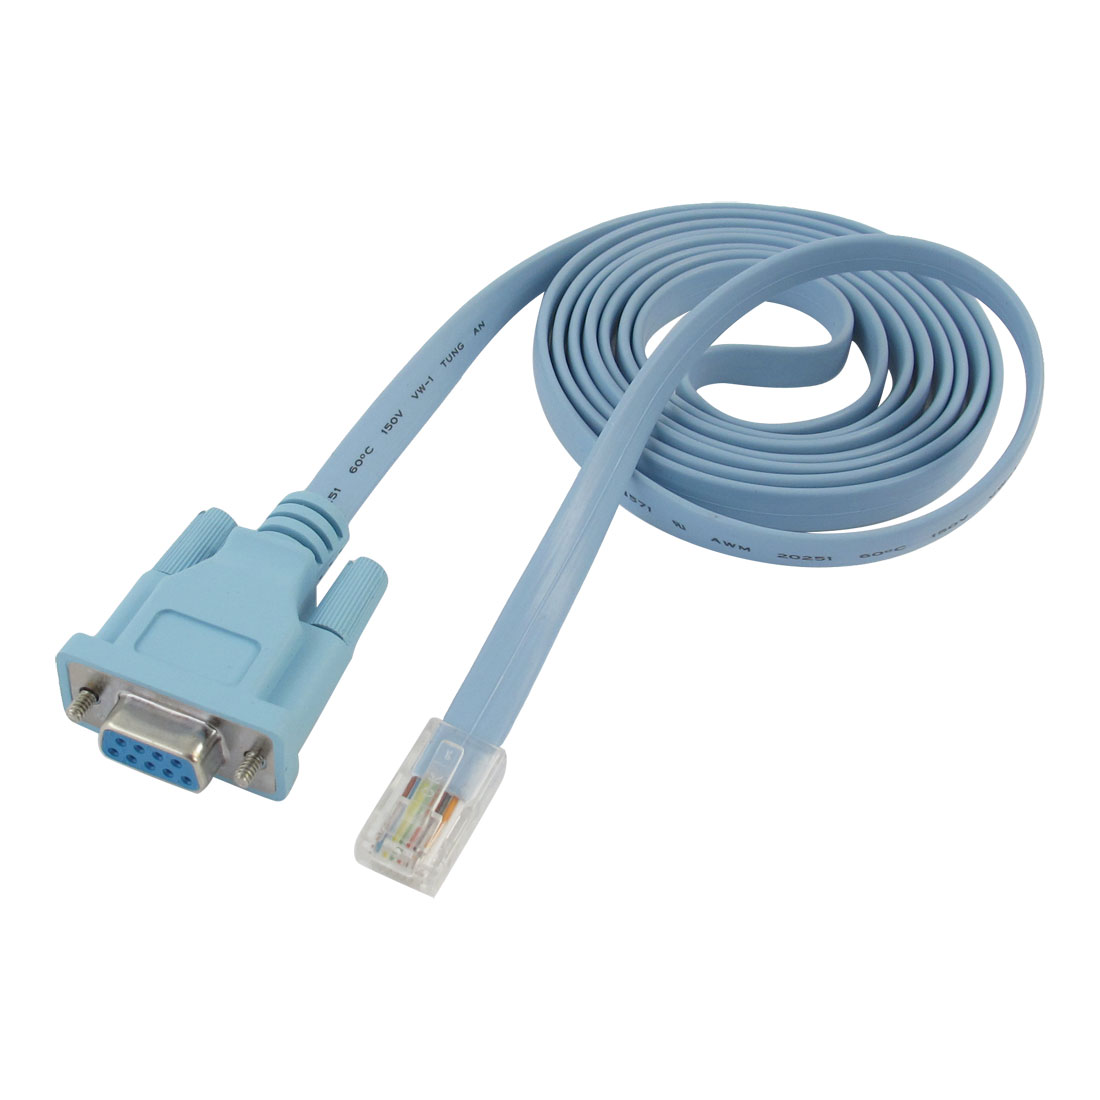 RJ45 Male to RS232 DB9 Female Cable Adapter Light Blue 1.8M 5.9Ft